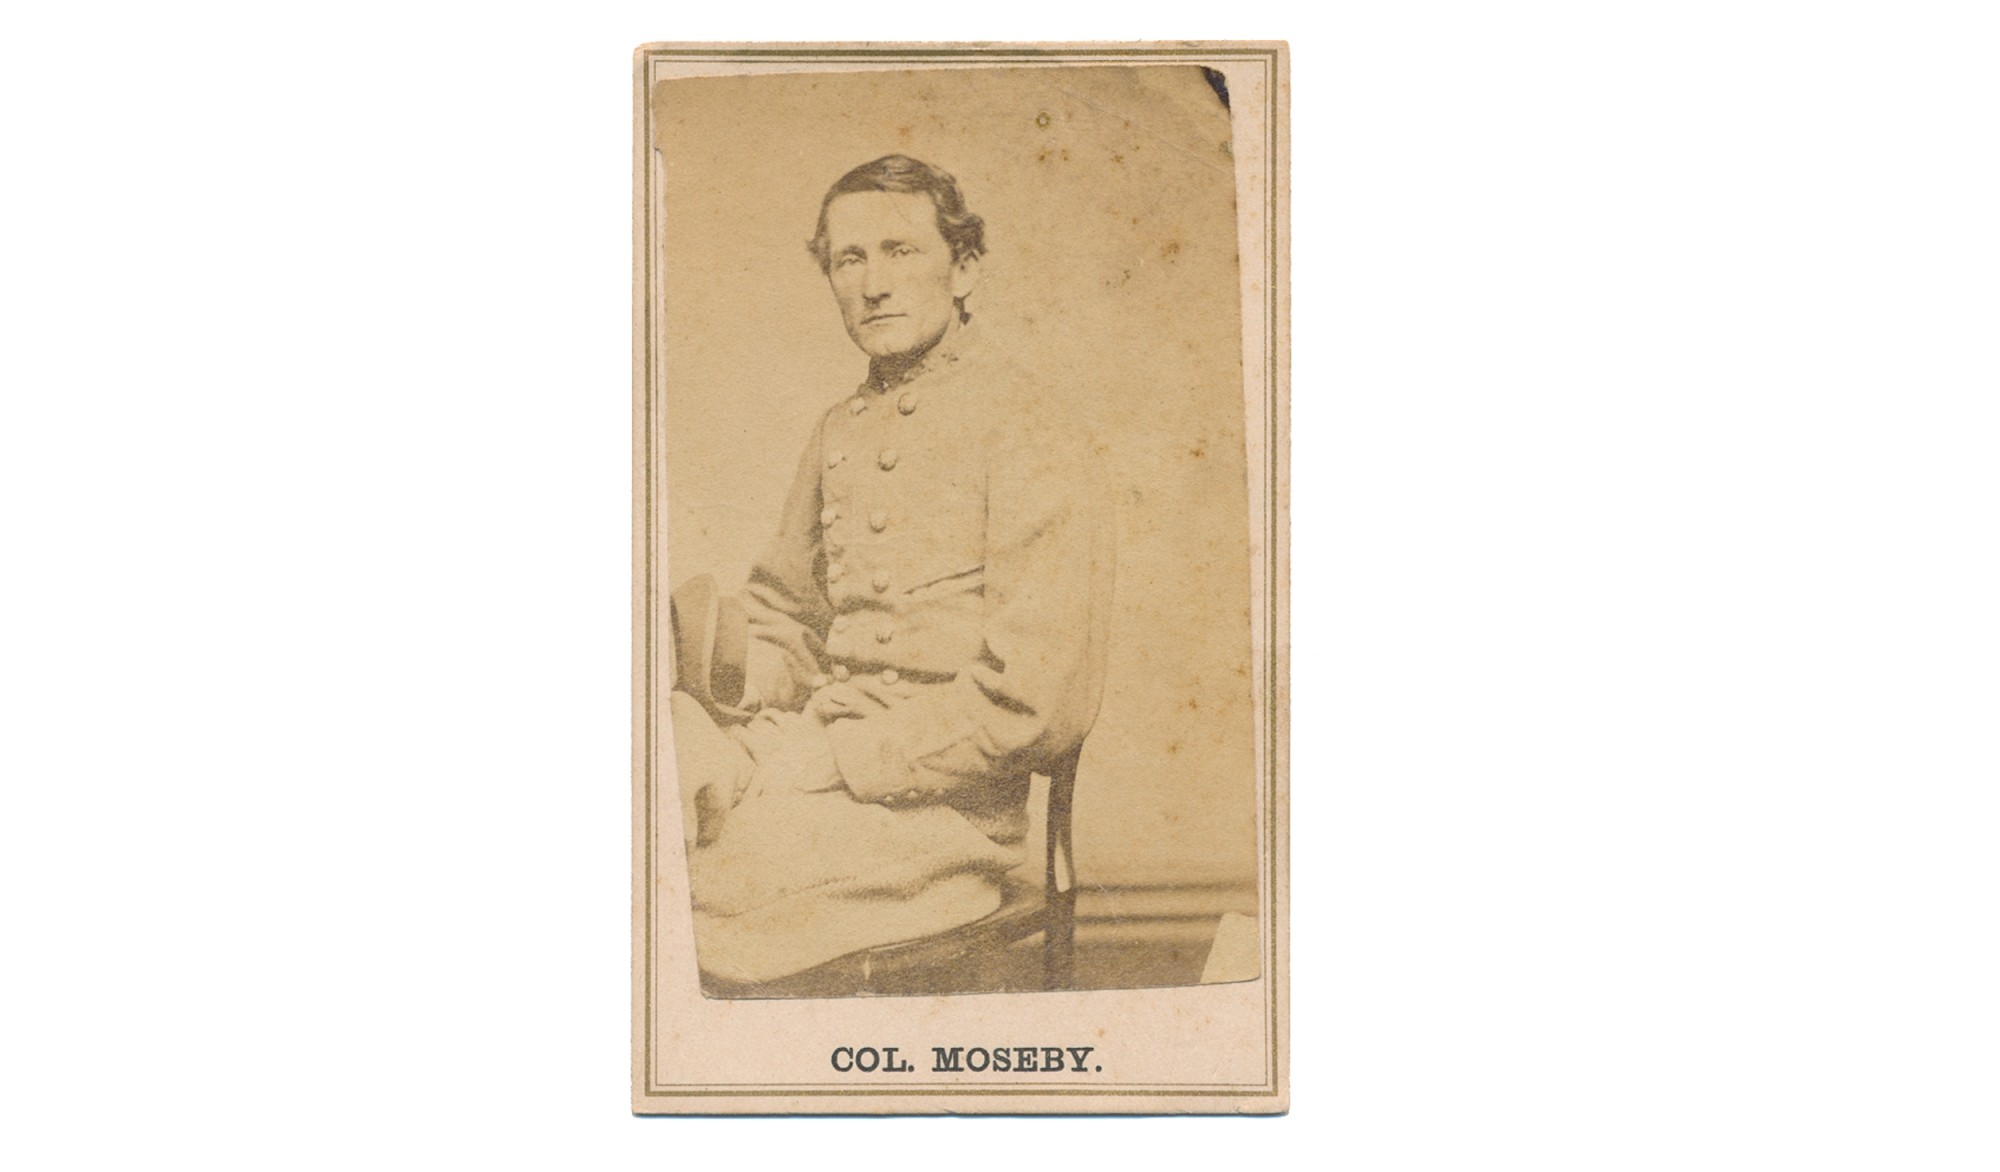 CDV OF CONFEDERATE COLONEL JOHN SINGLETON MOSBY